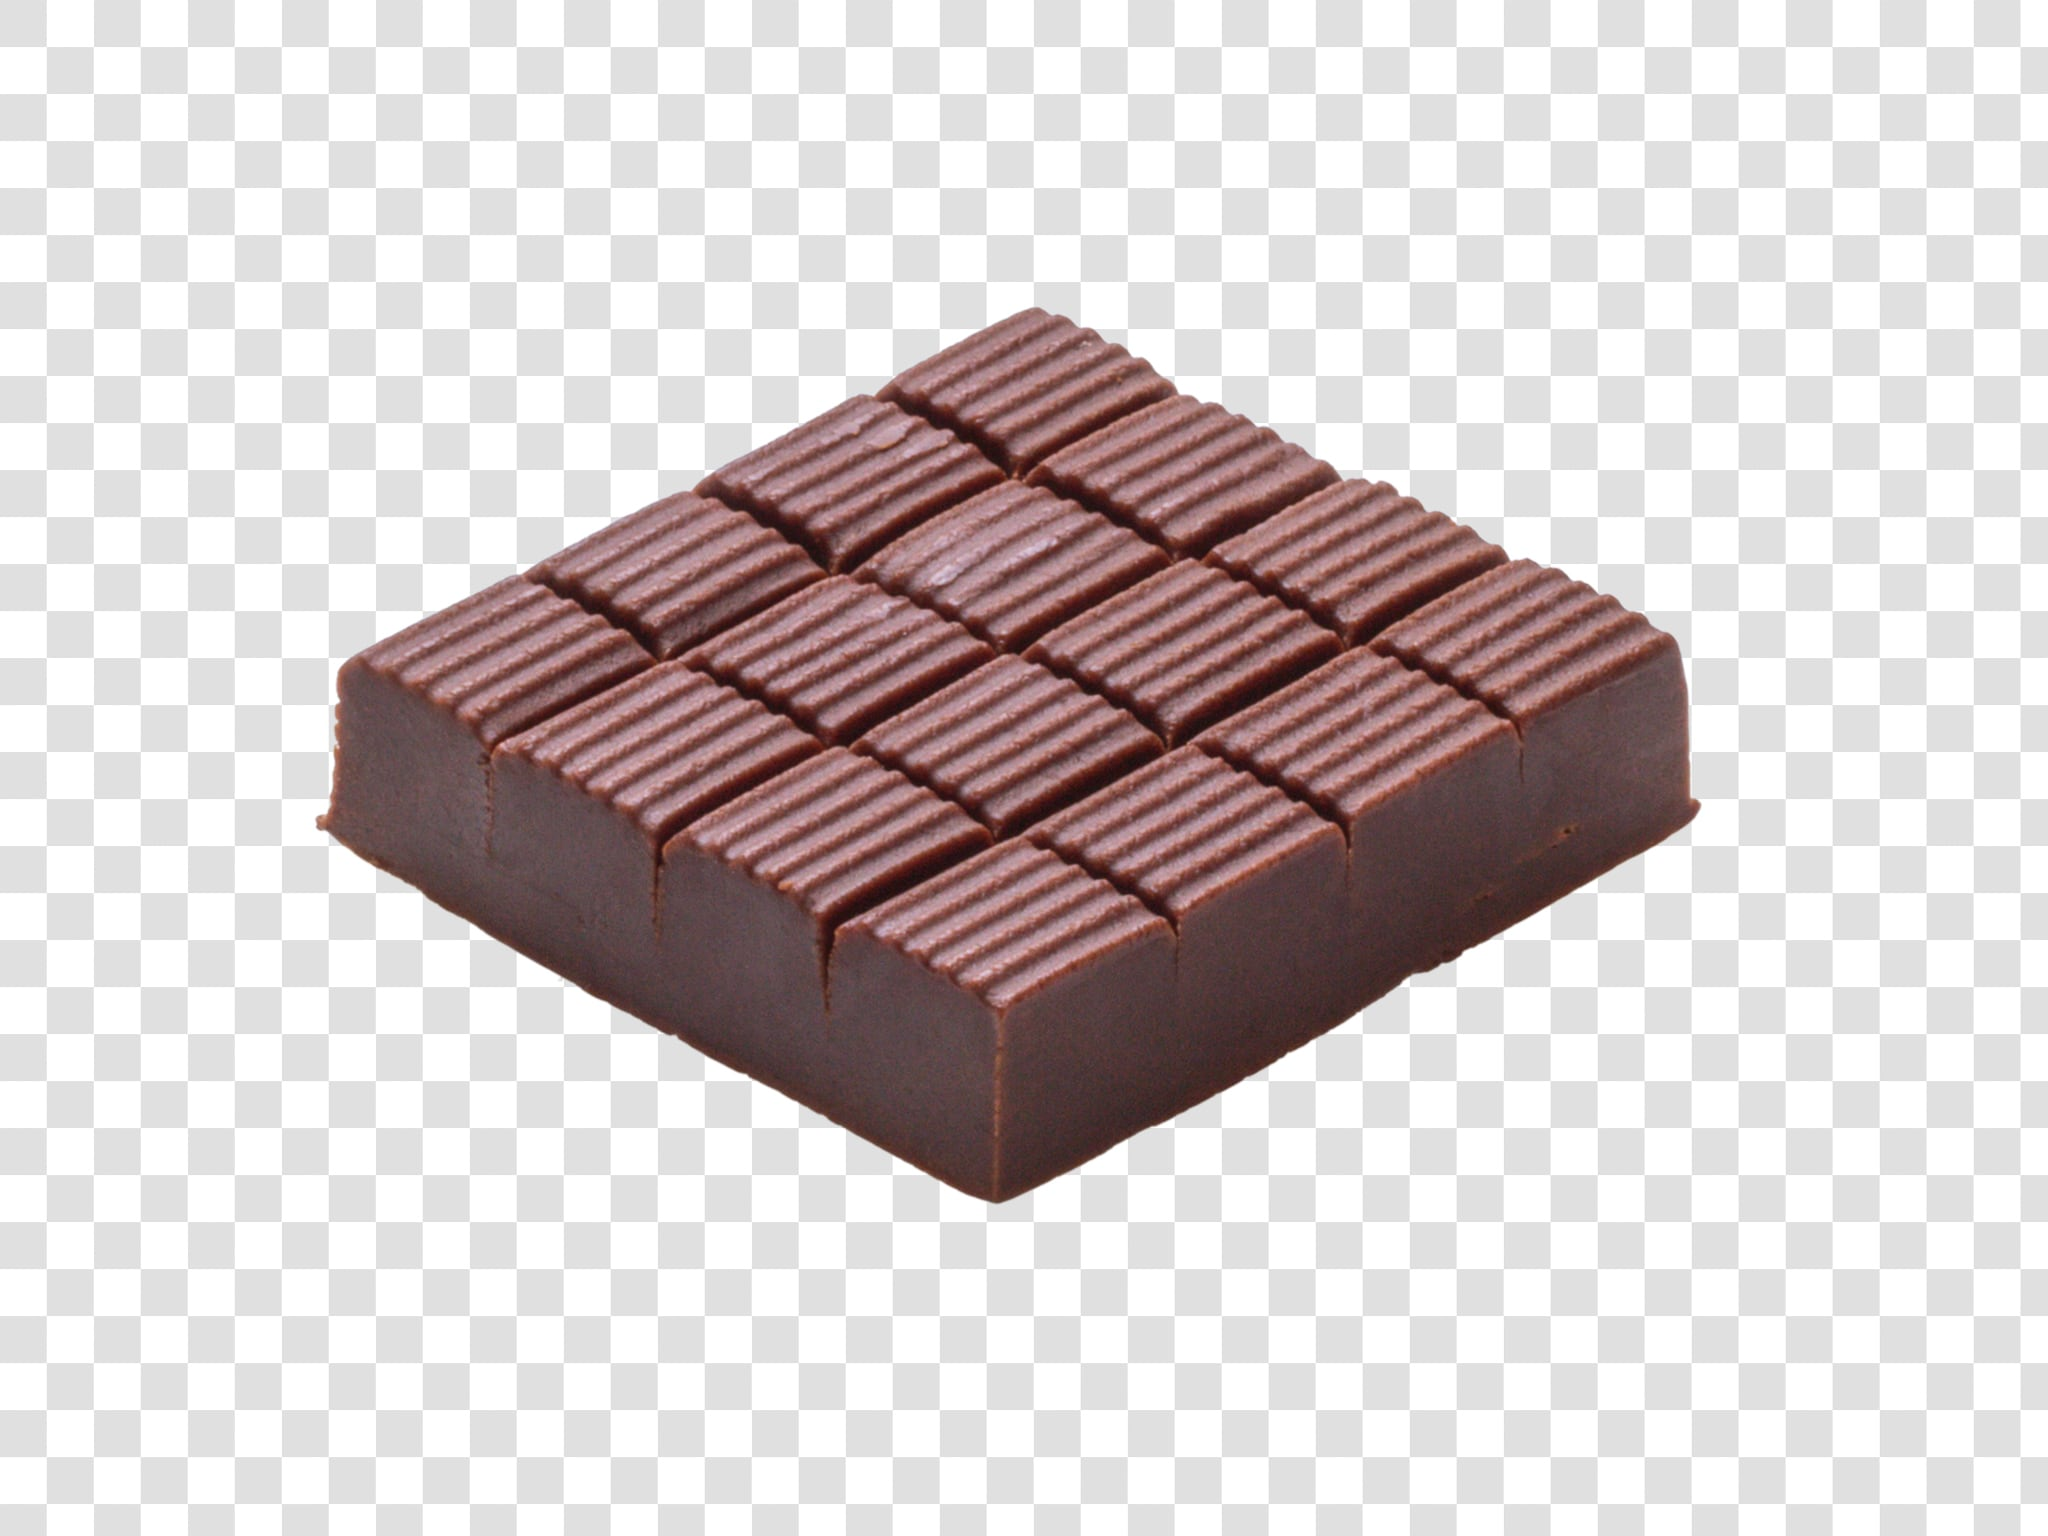 Chocolate image with transparent background